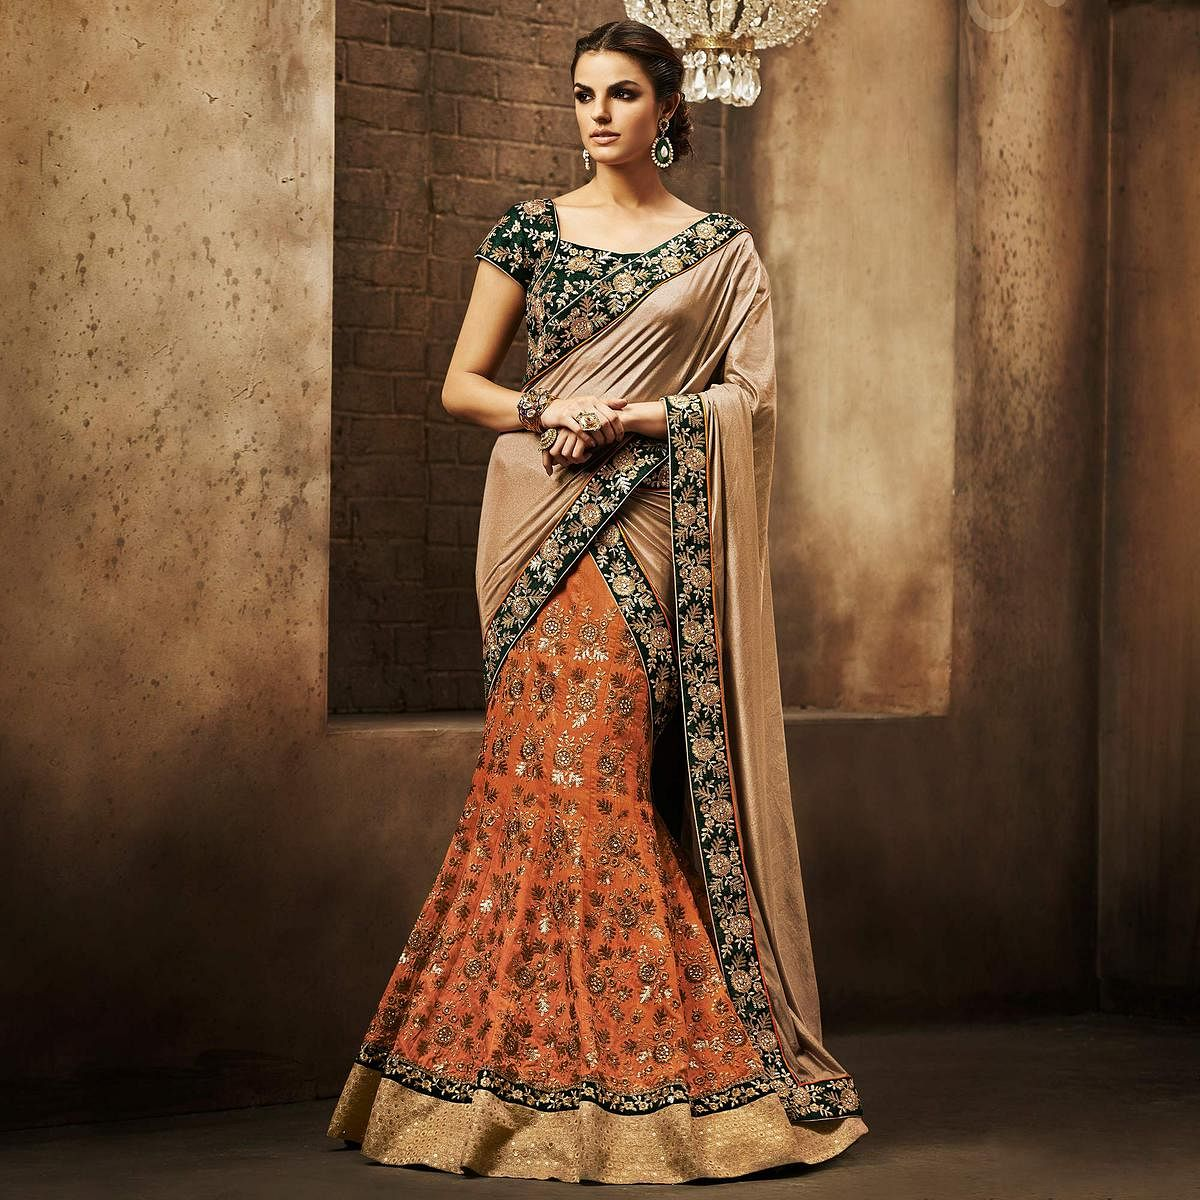 NAKKASHI - Unique Orange Colored Party Wear Embroidered Bhagalpuri Raw Silk Lehenga Choli